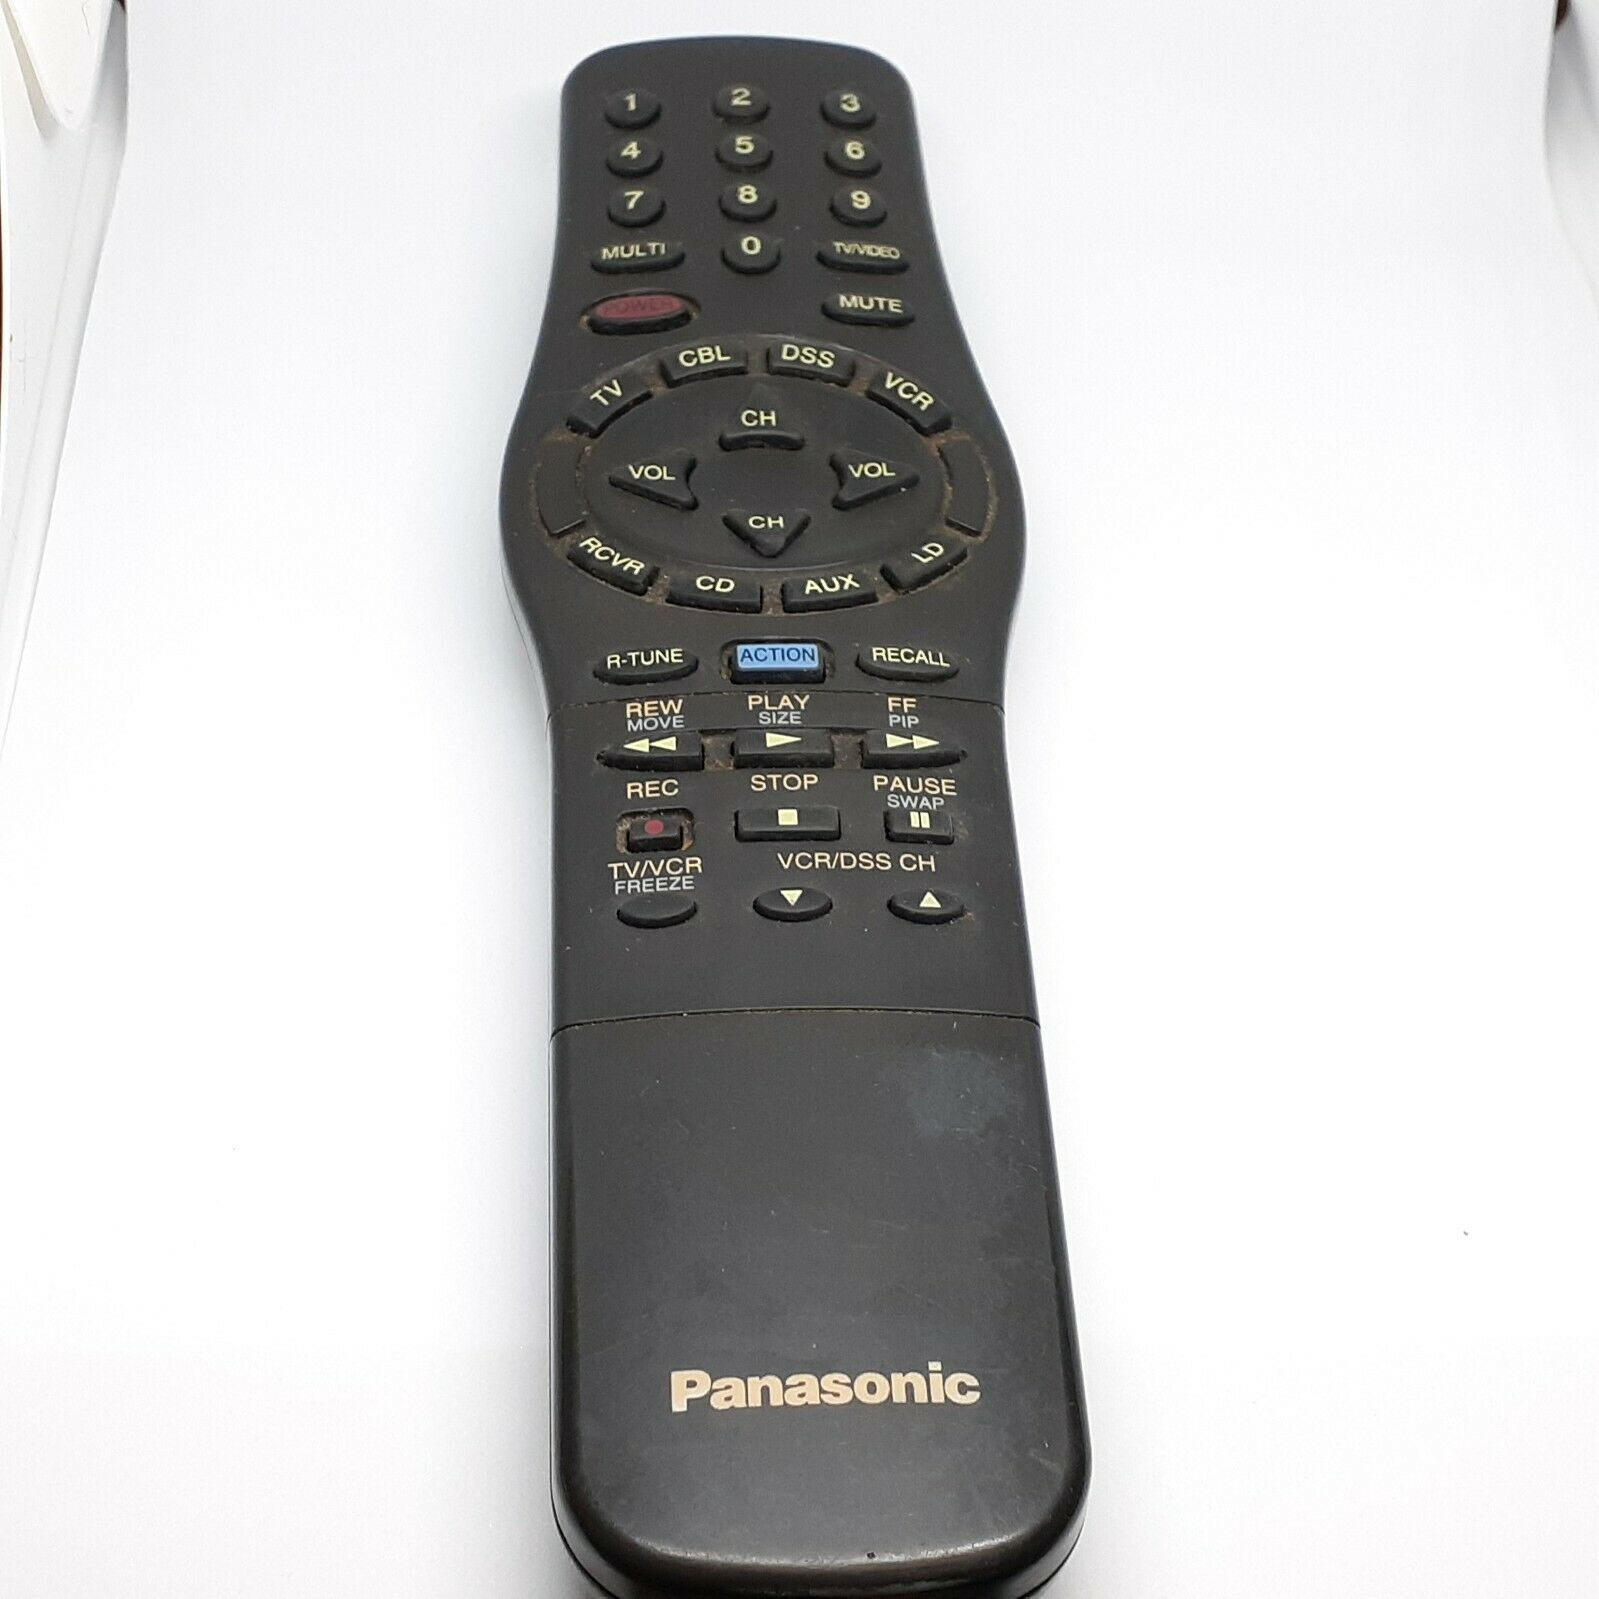 Panasonic EUR511051A Remote Control TESTED